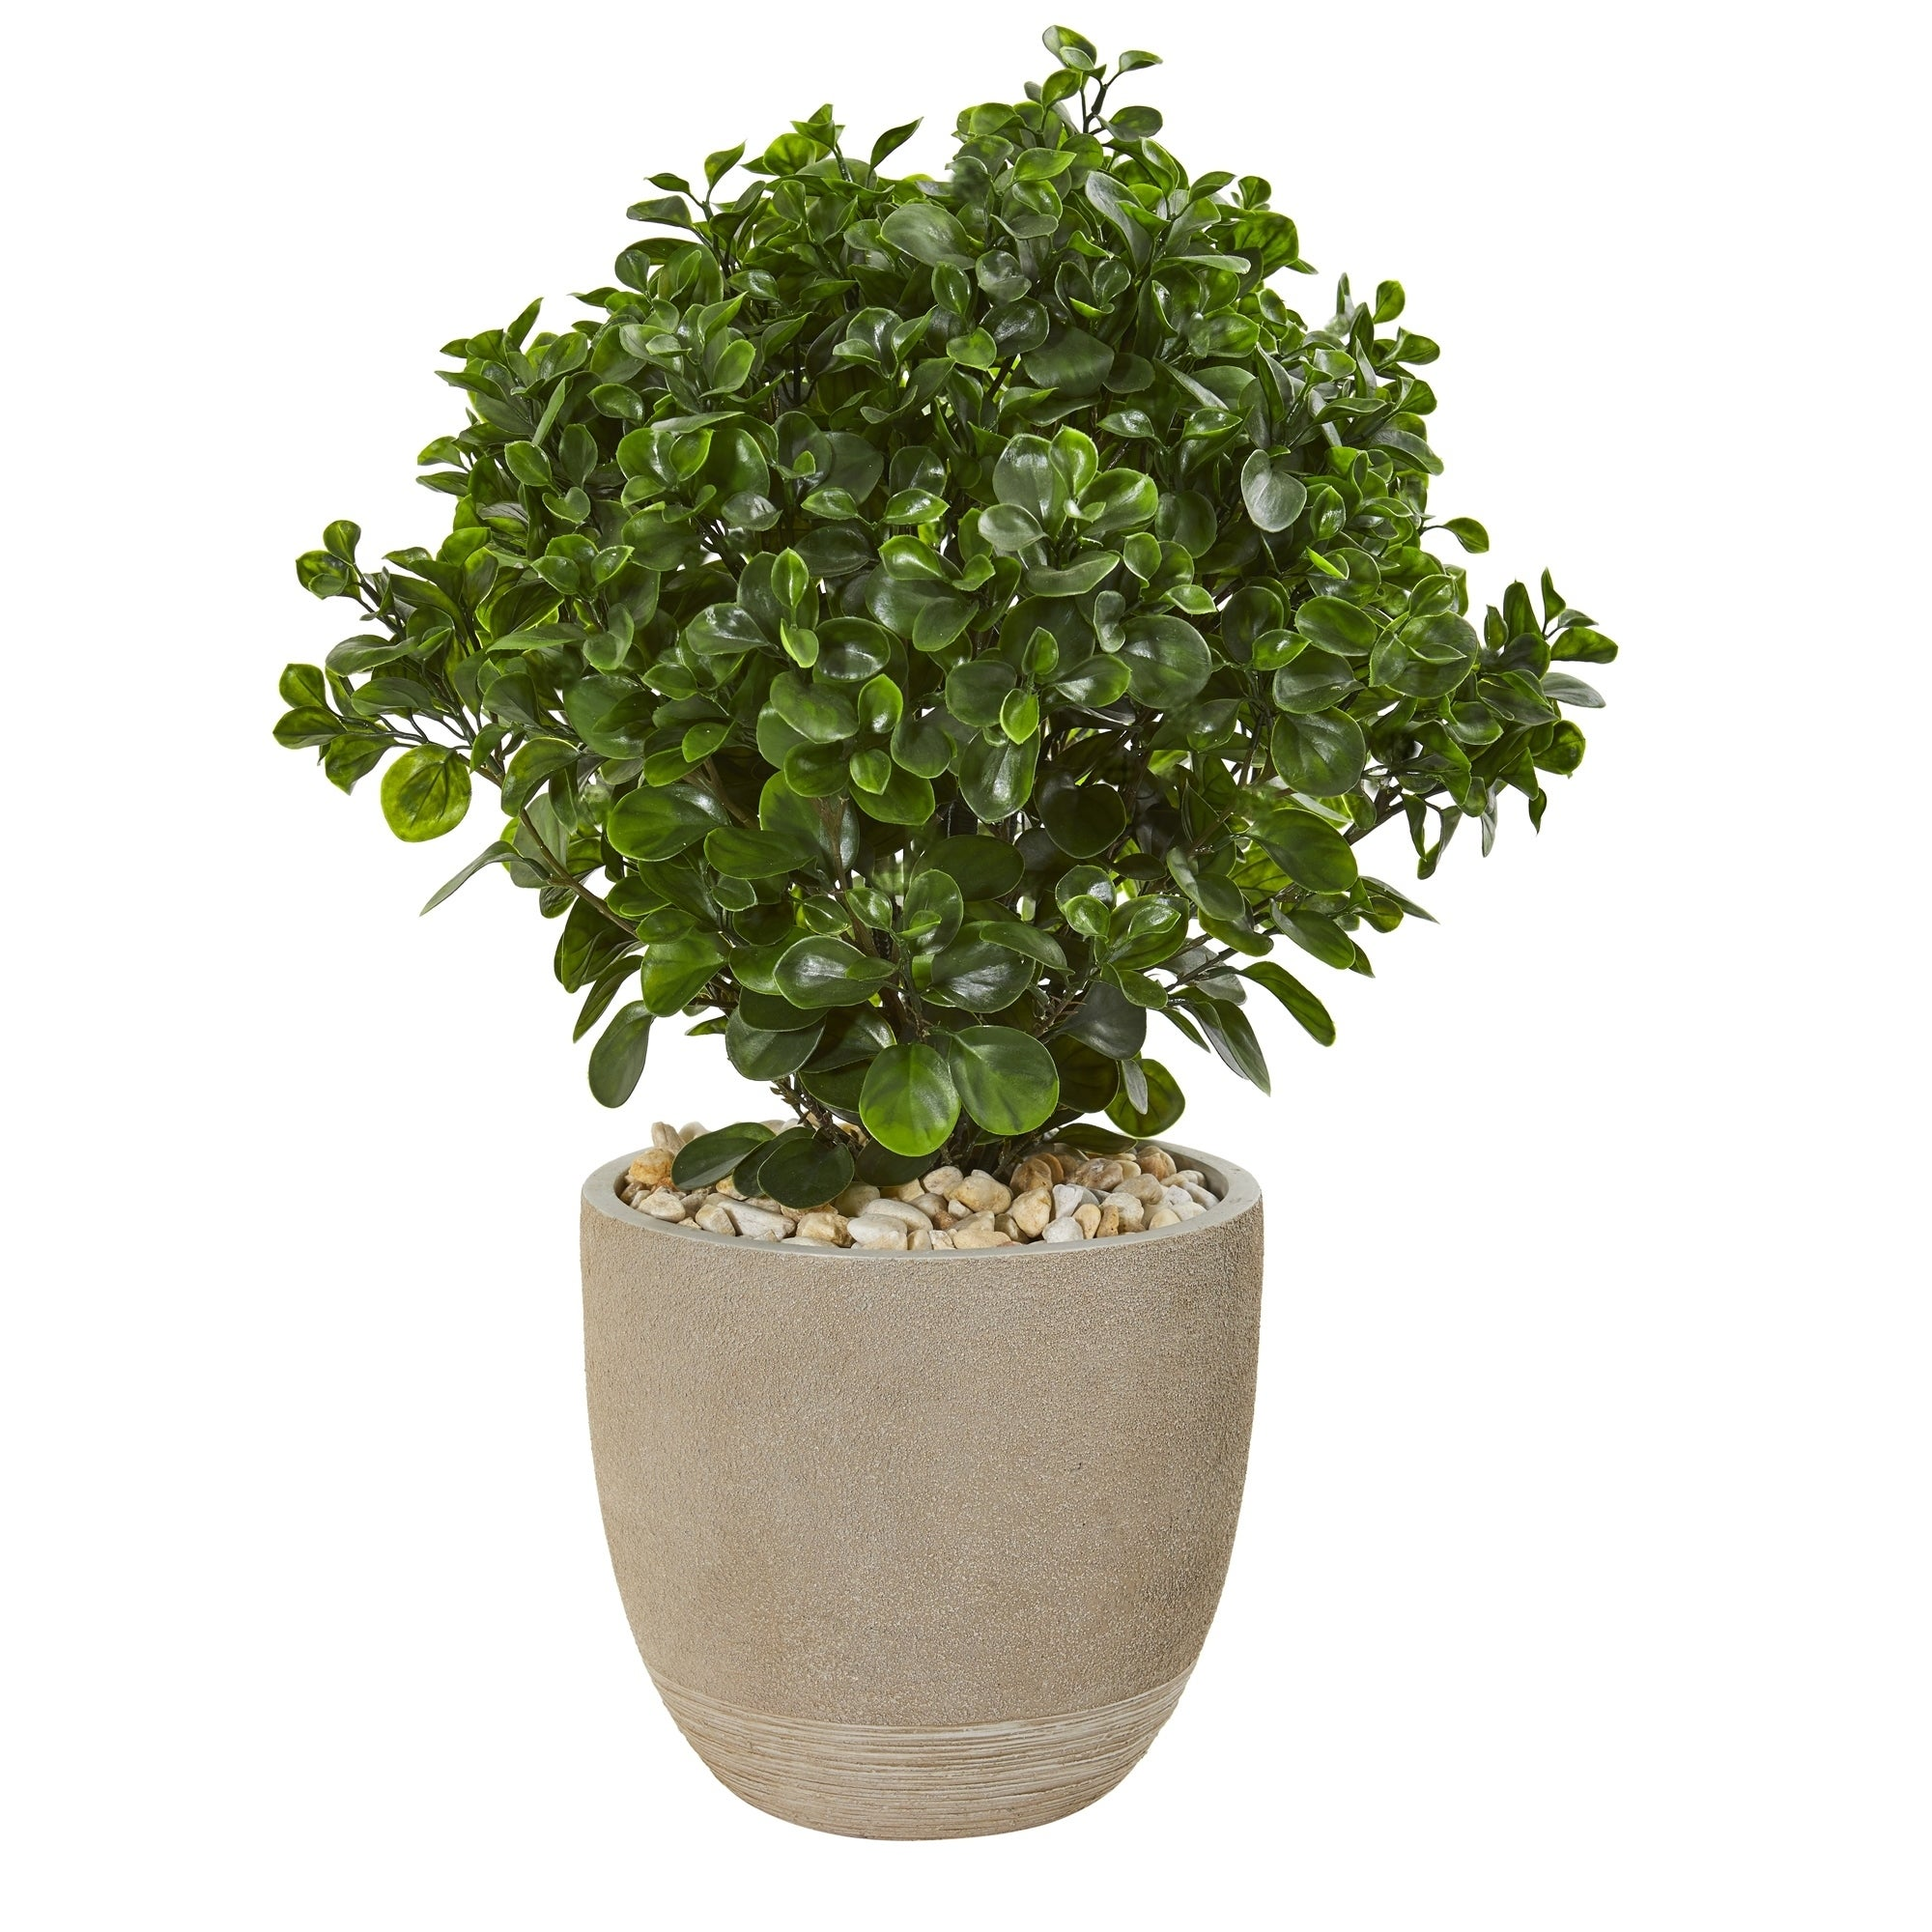 30 Peperomia Artificial Plant in Sand Stone Planter UV Resistant (Indoor/Outdoor)